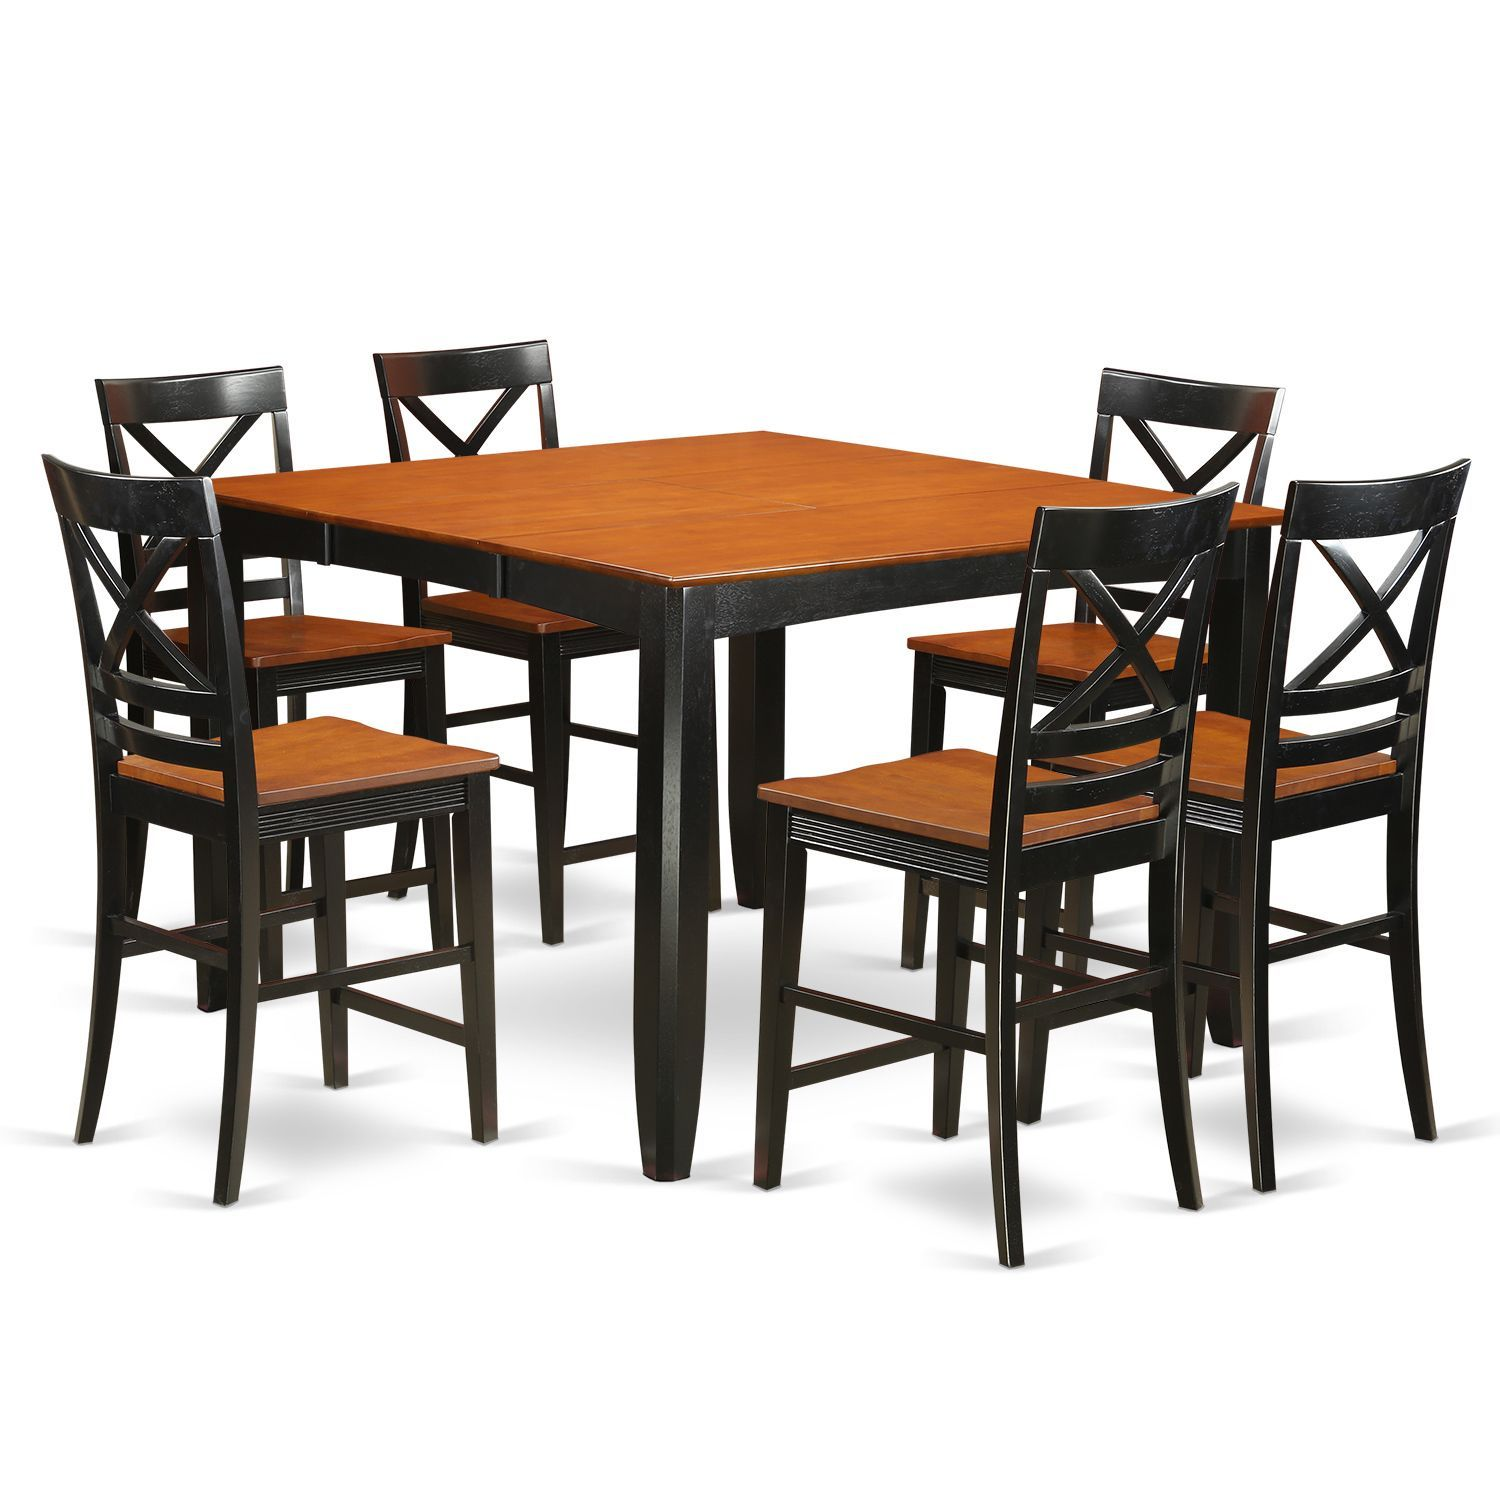 FAQU7H BLK W 6 stool 7 piece Counter height Dining Table Set